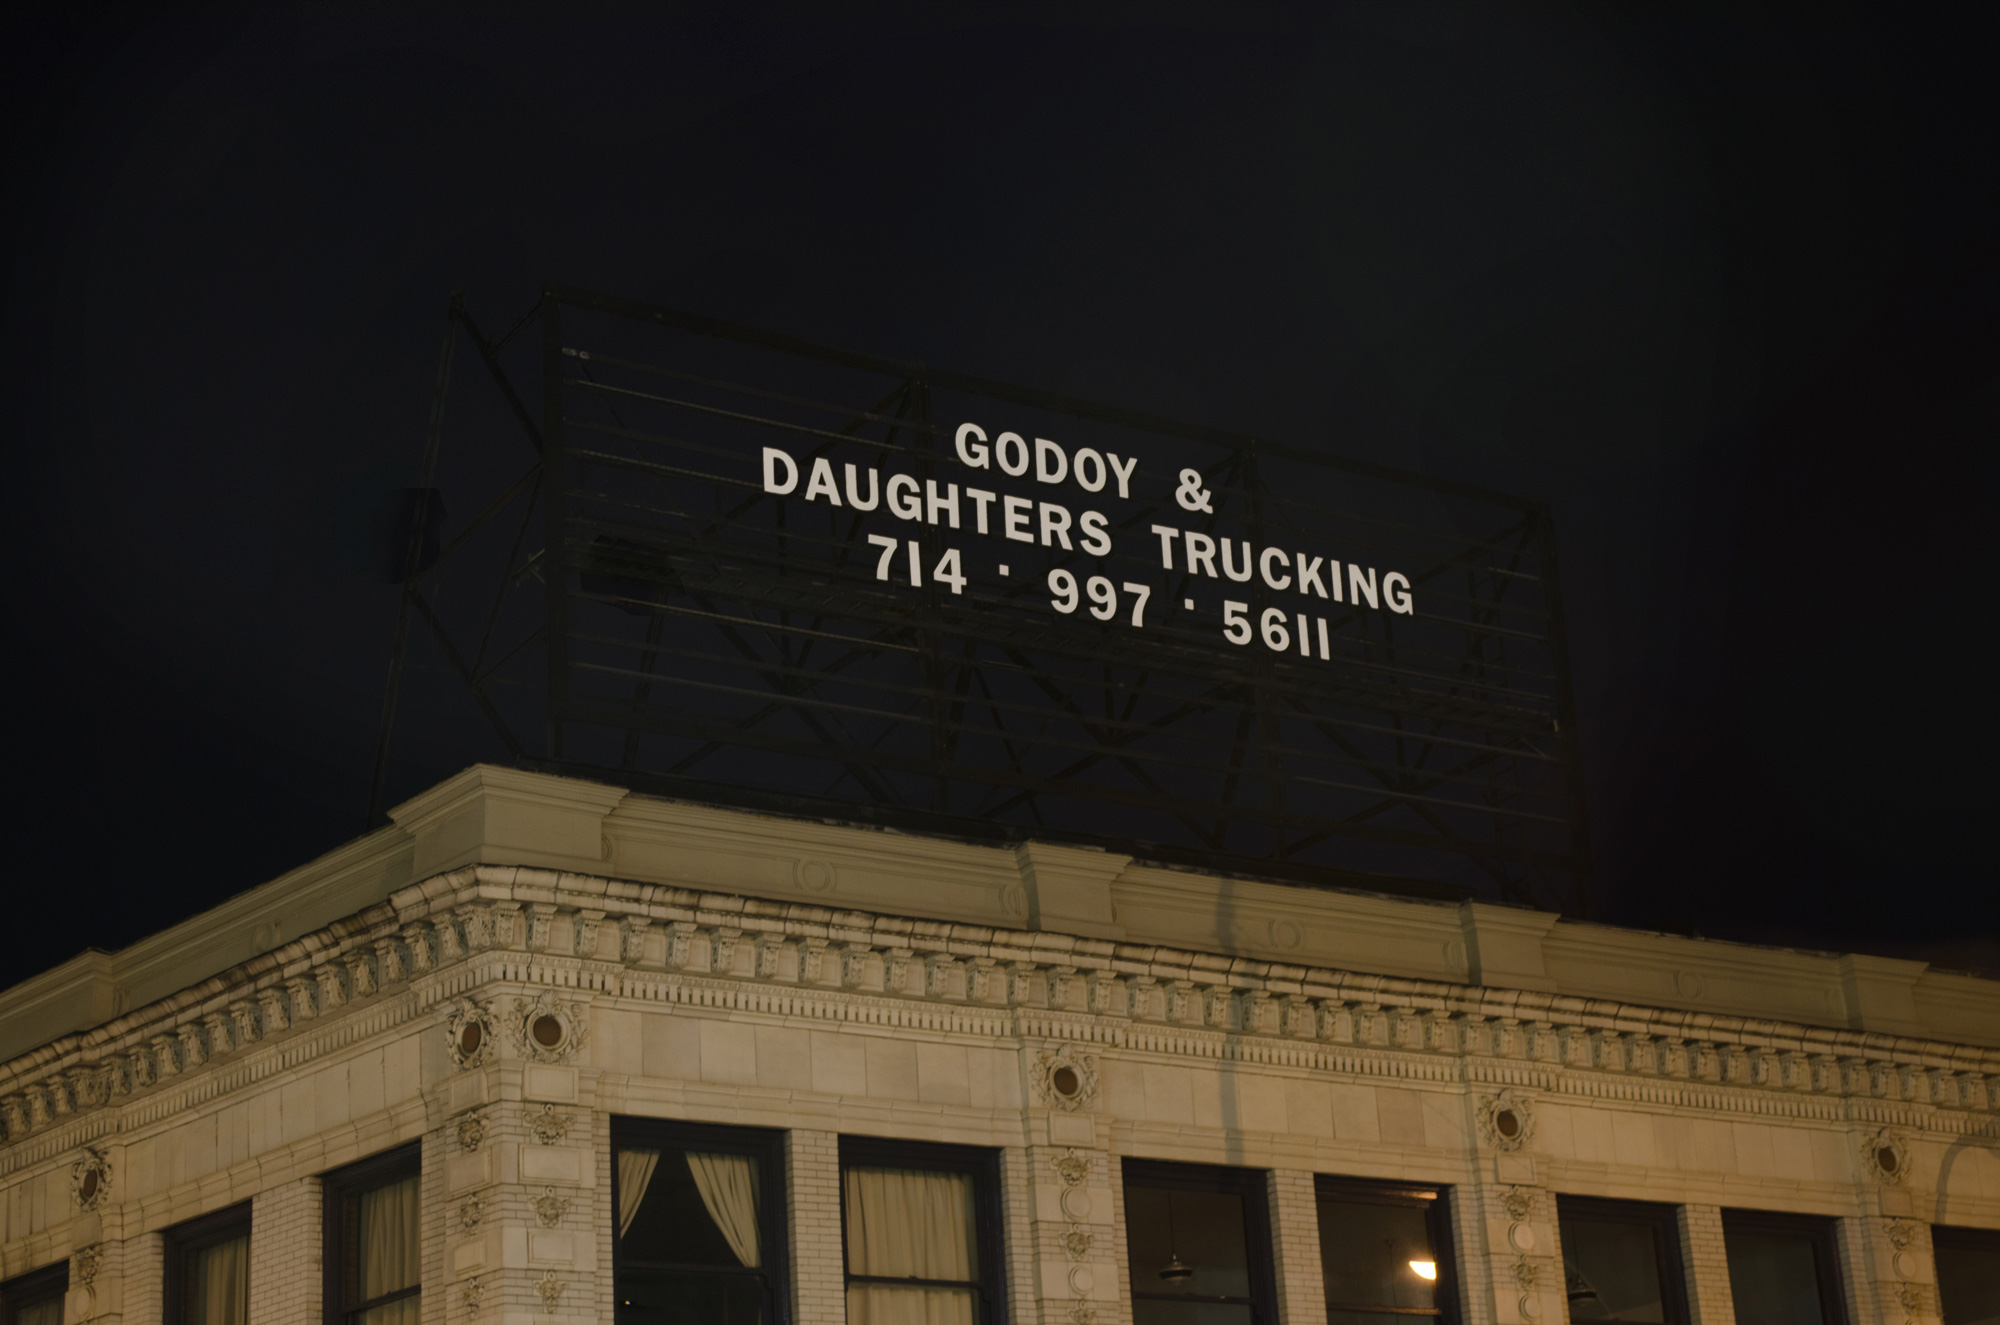 Godoy & Daughters Trucking